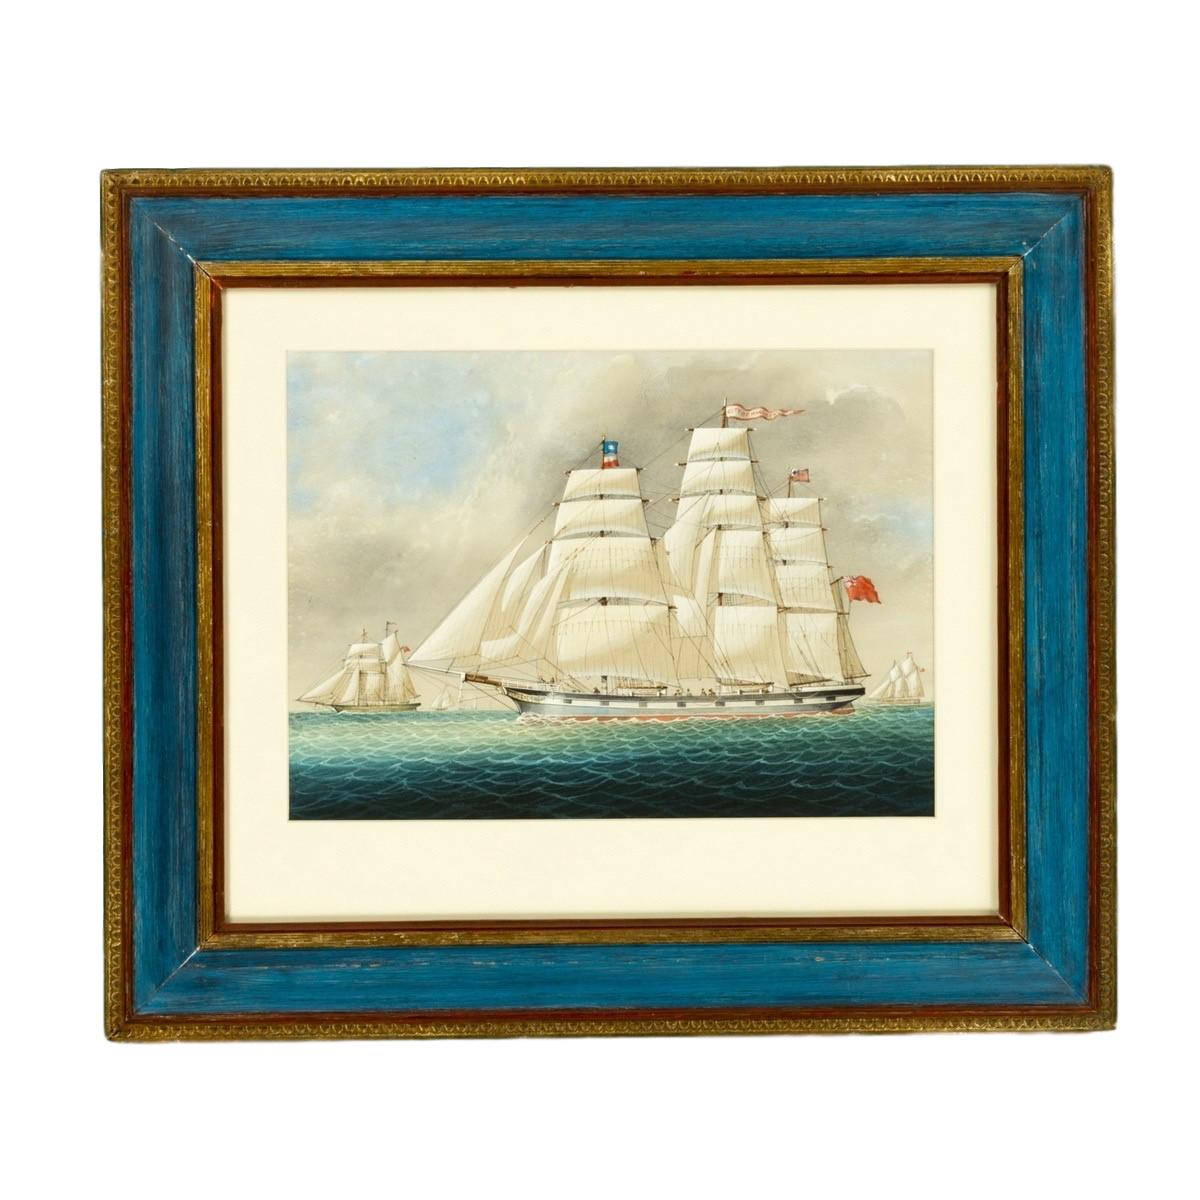 A fine watercolour of the three masted sailing ship The SS City of Manchester.